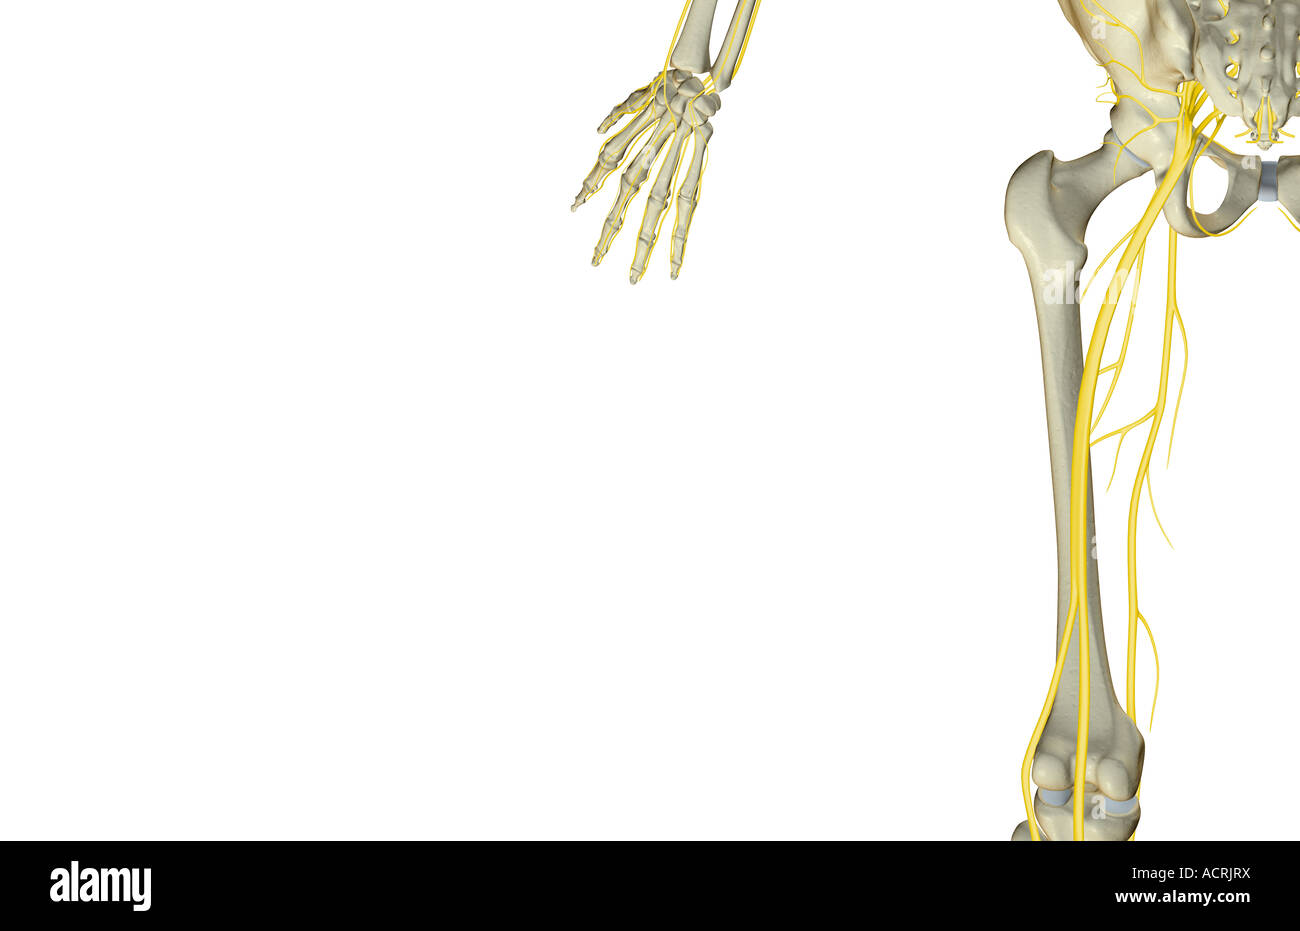 The Nerves Of The Thigh Stock Photo 13218301 Alamy